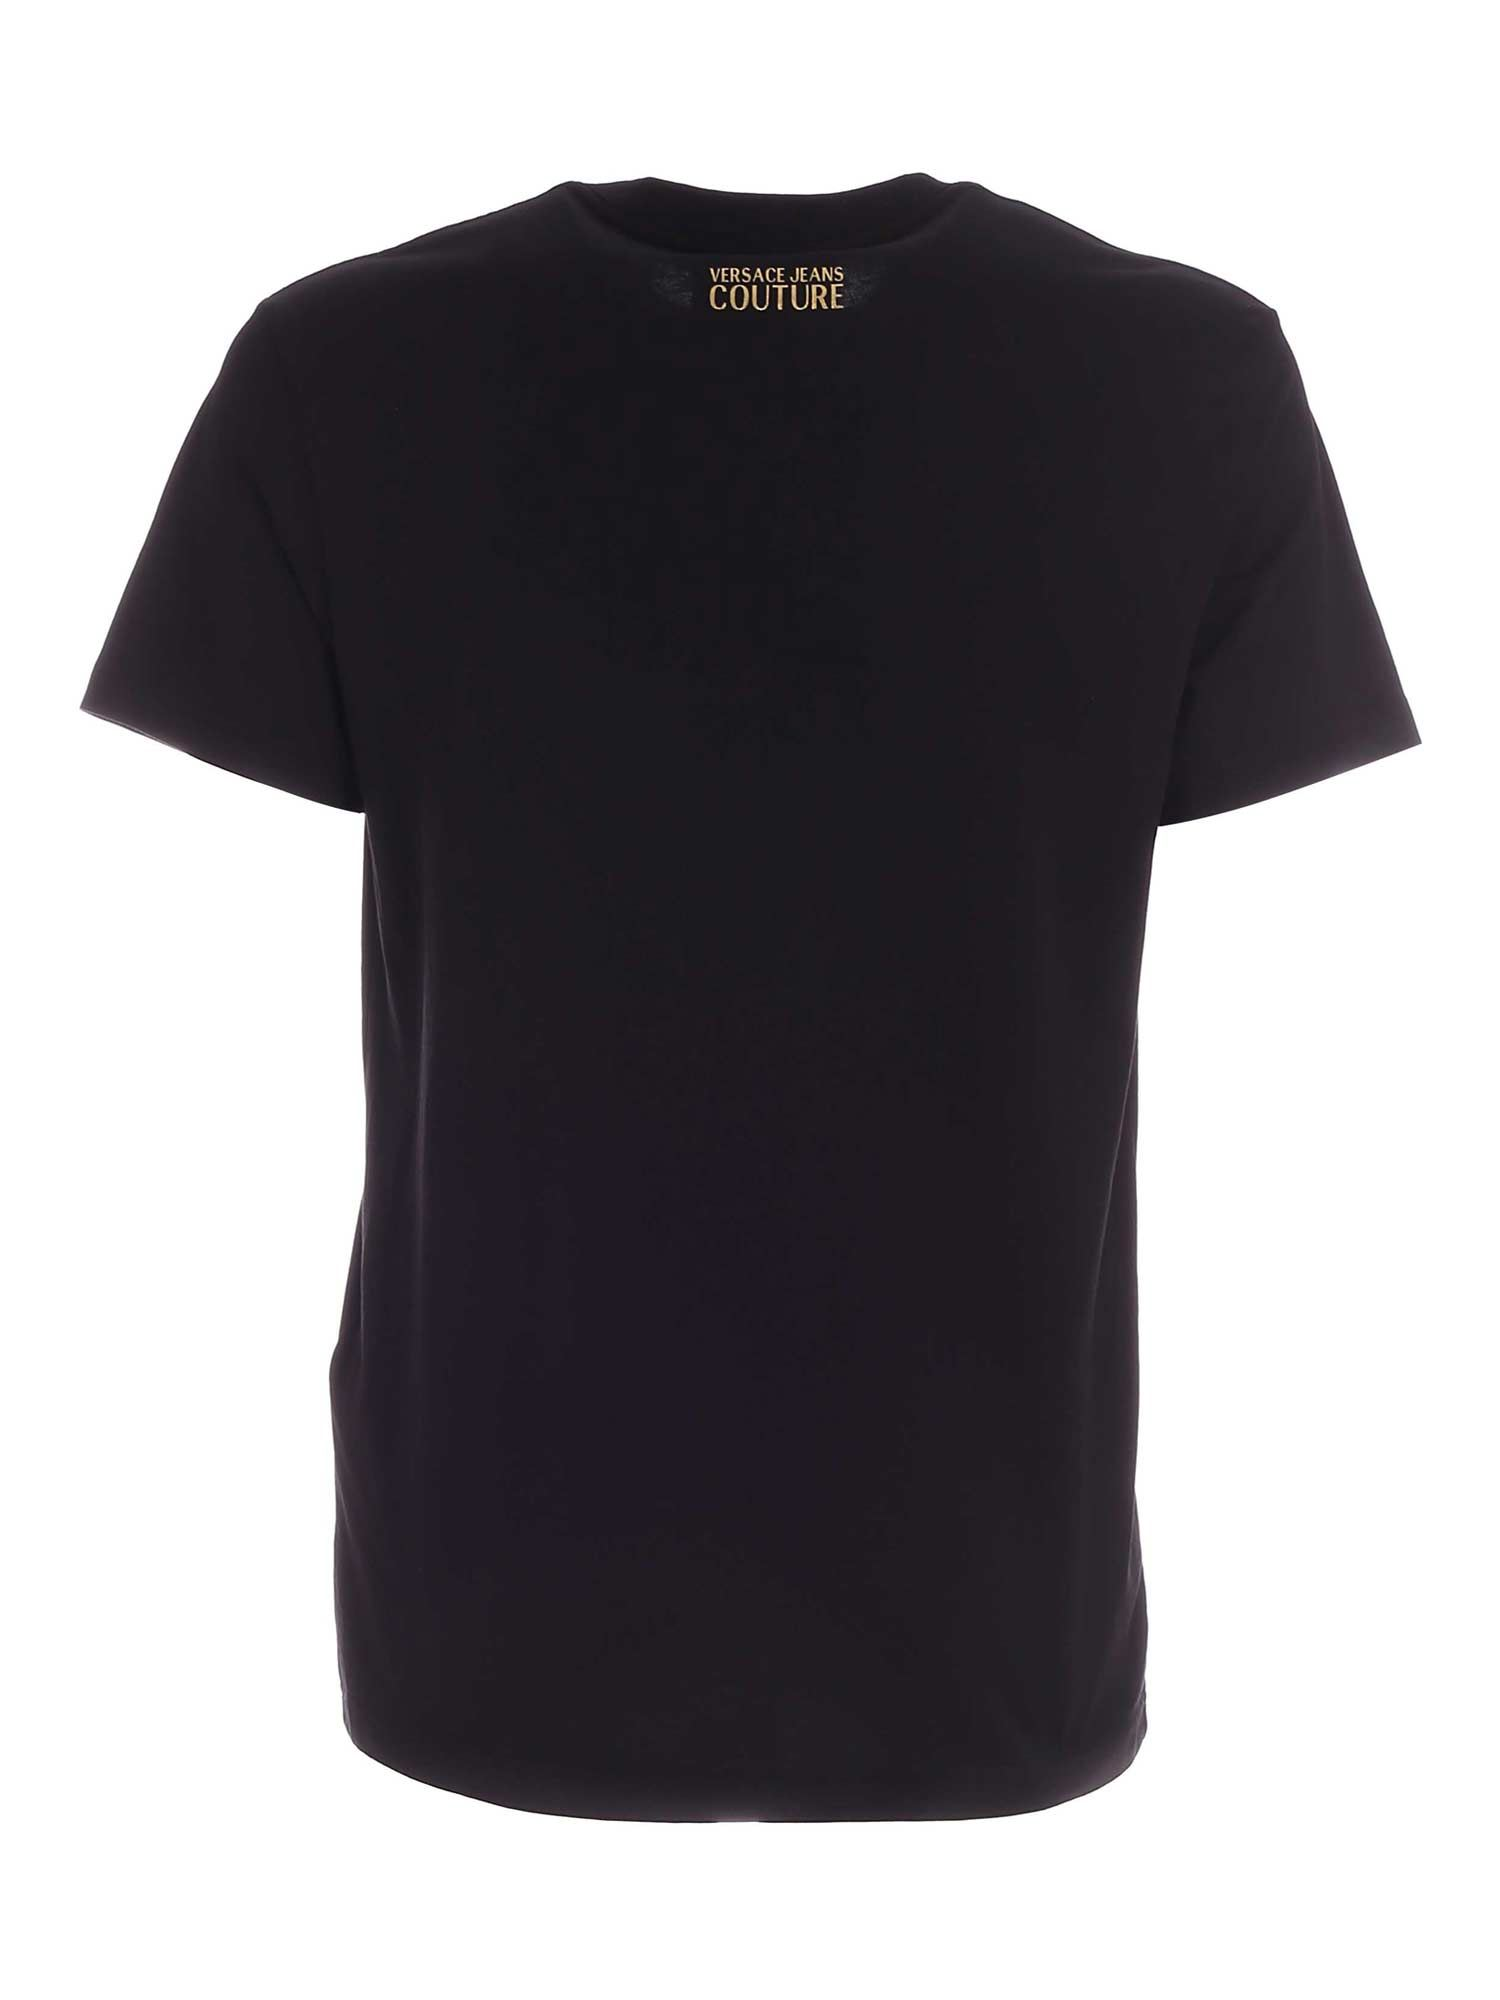 VERSACE JEANS COUTURE Cottons CAPODANNO LUNARE PATTERN T-SHIRT IN BLACK